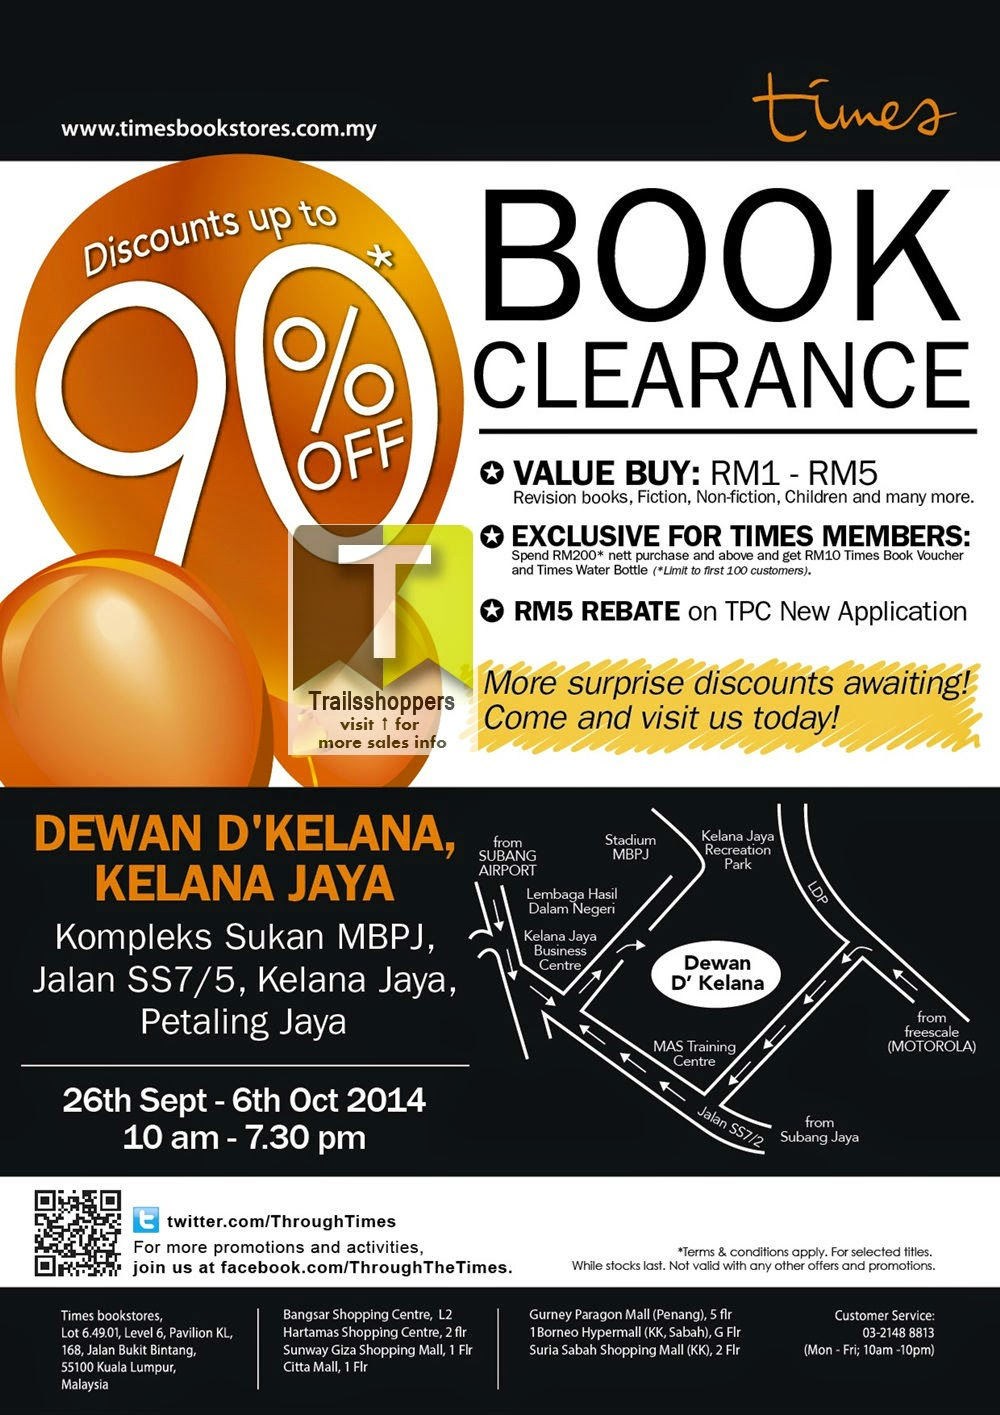 Times Book Clearance Sale Discounts up to 90% malaysia